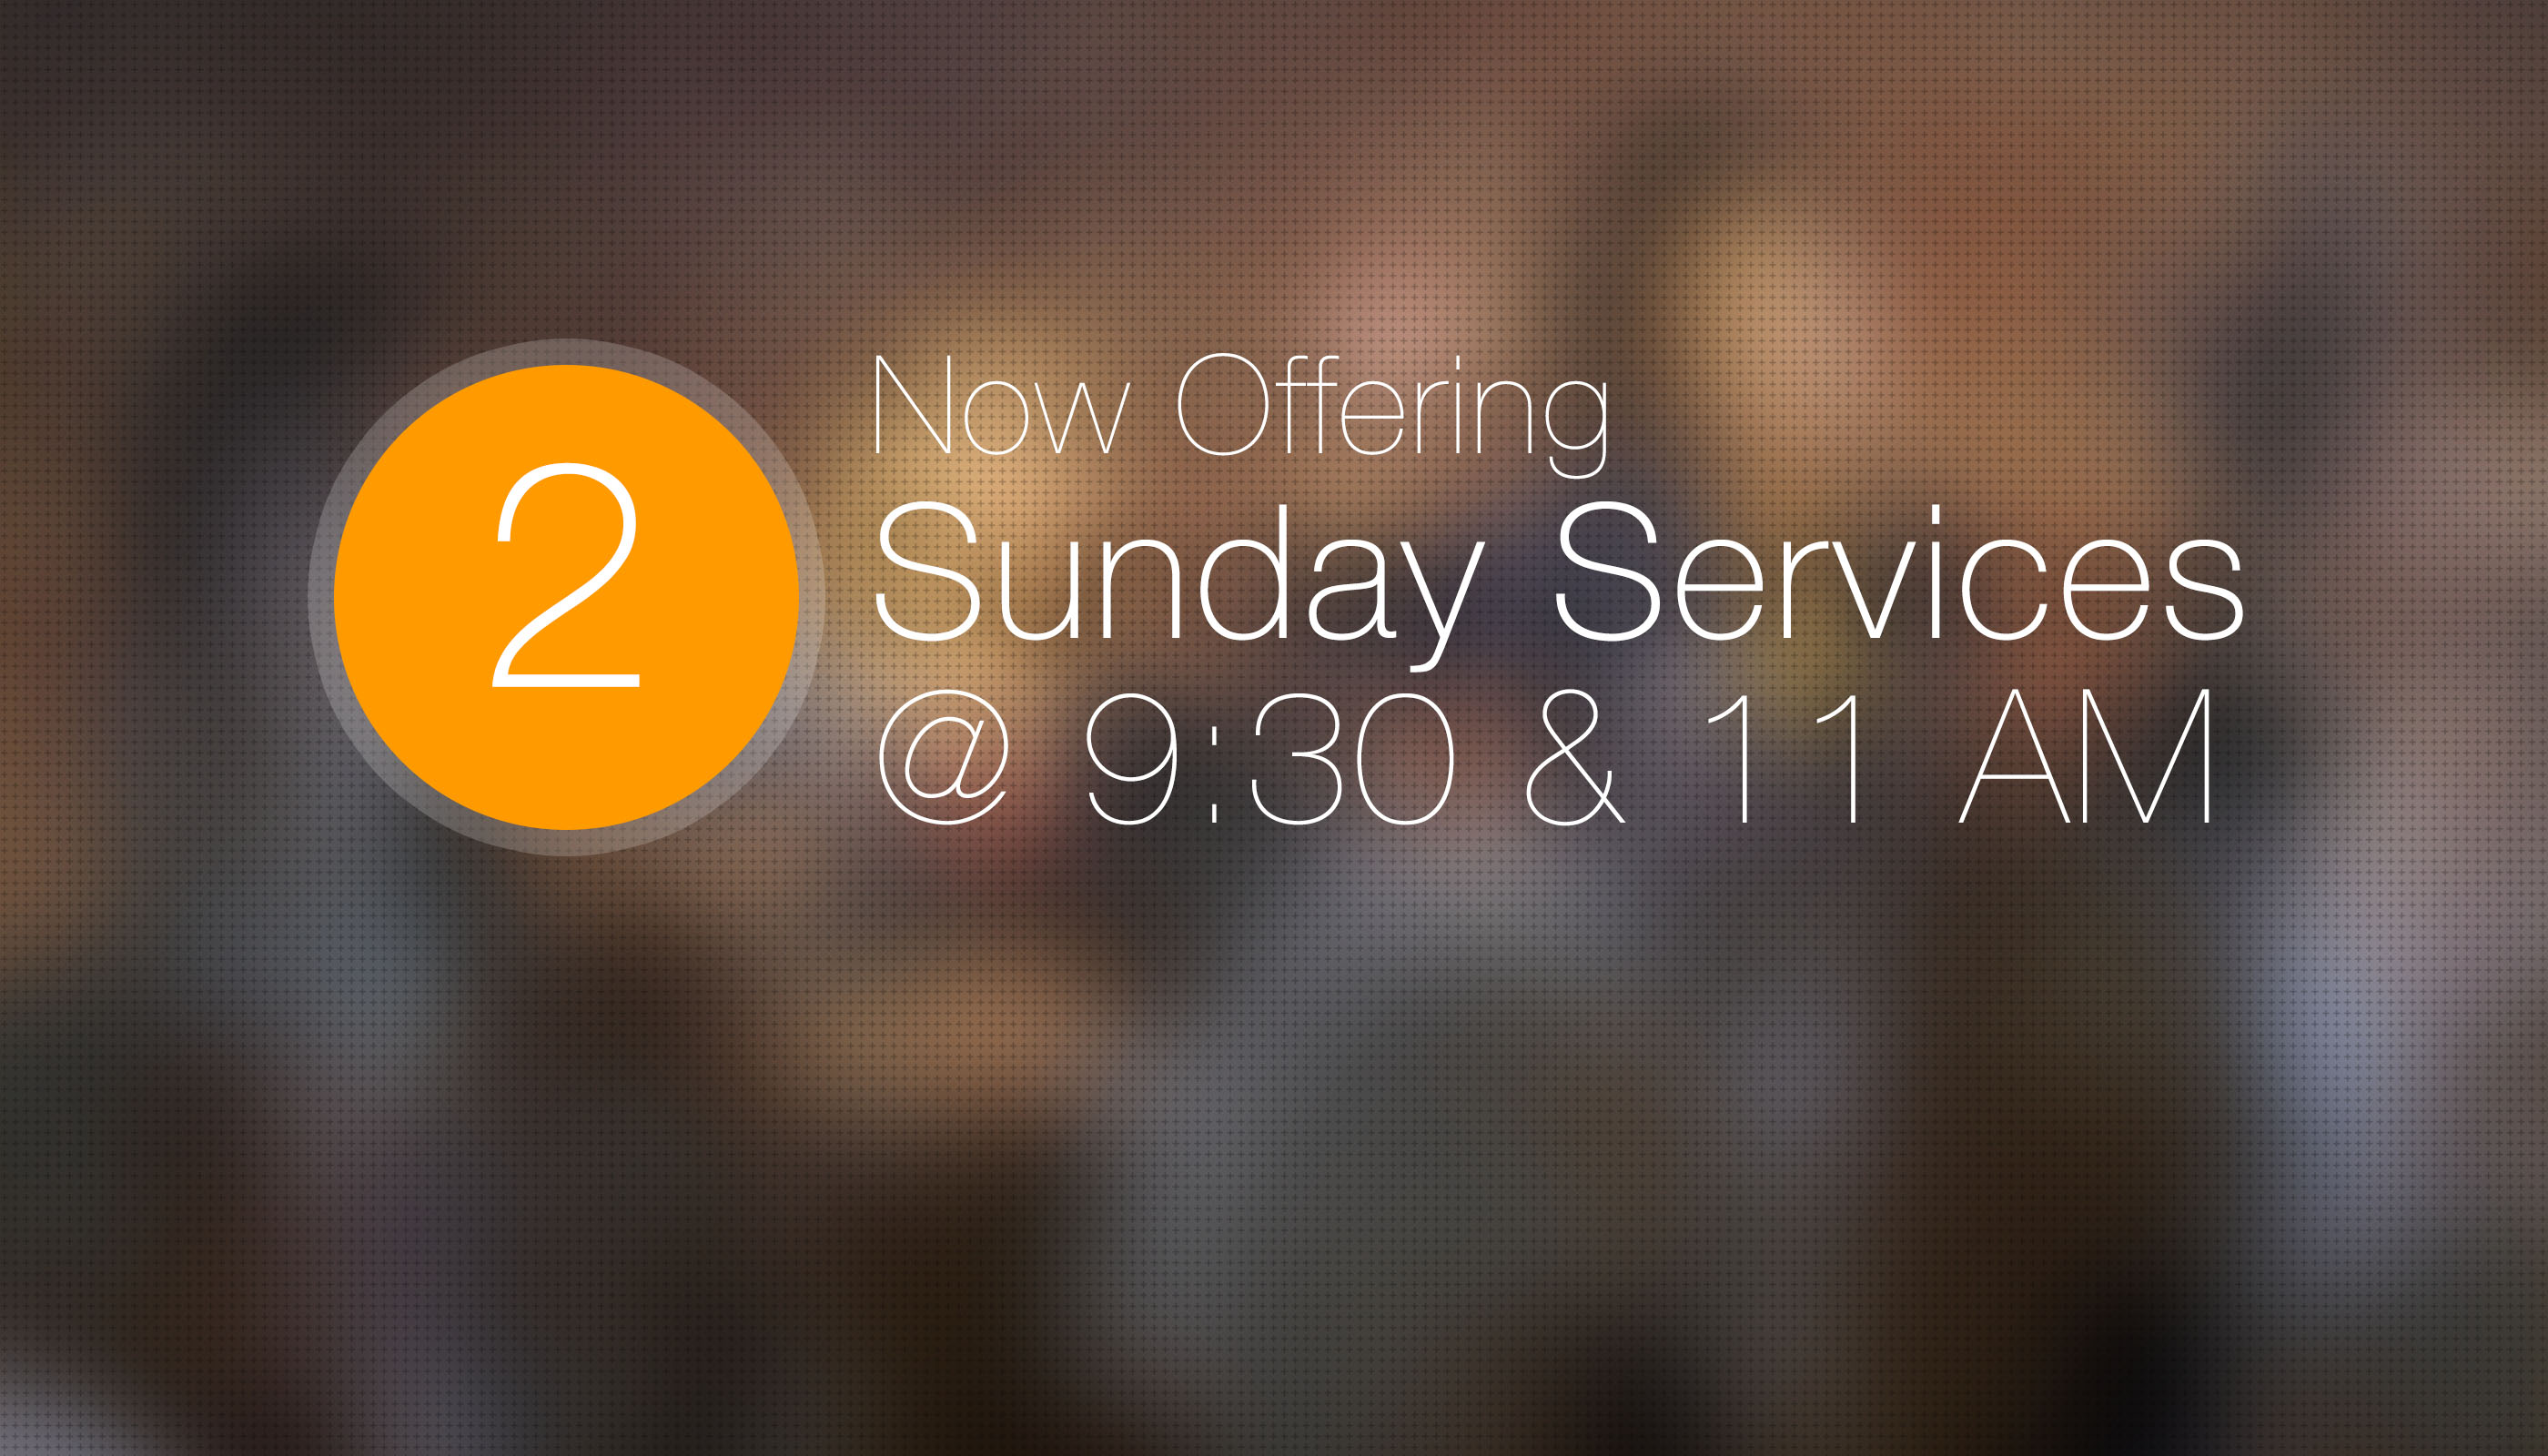 Two new service times at The Life Church, Lisle, IL 9:30 and 11 am